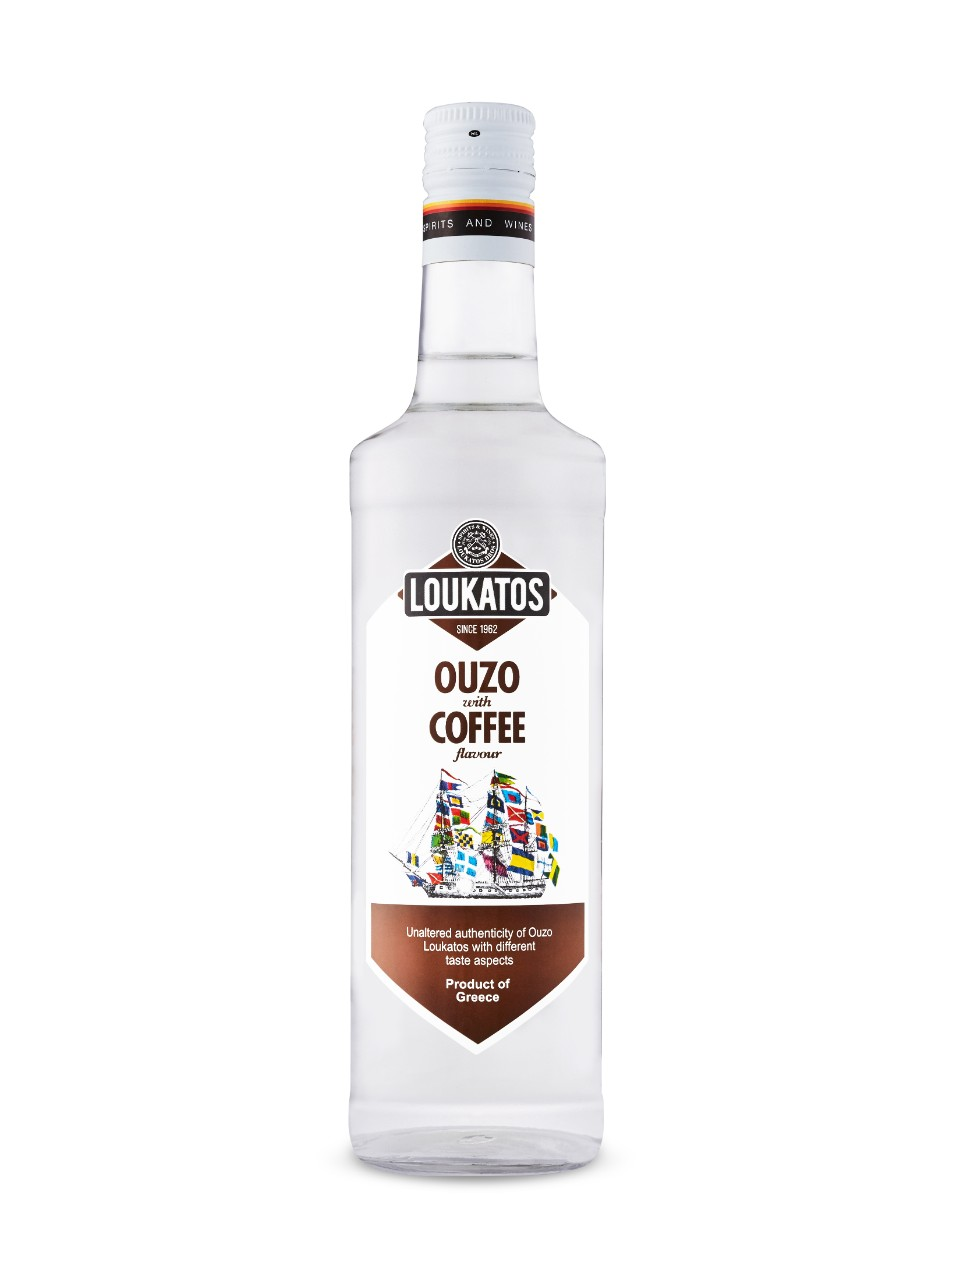 Loukatos Ouzo Coffee